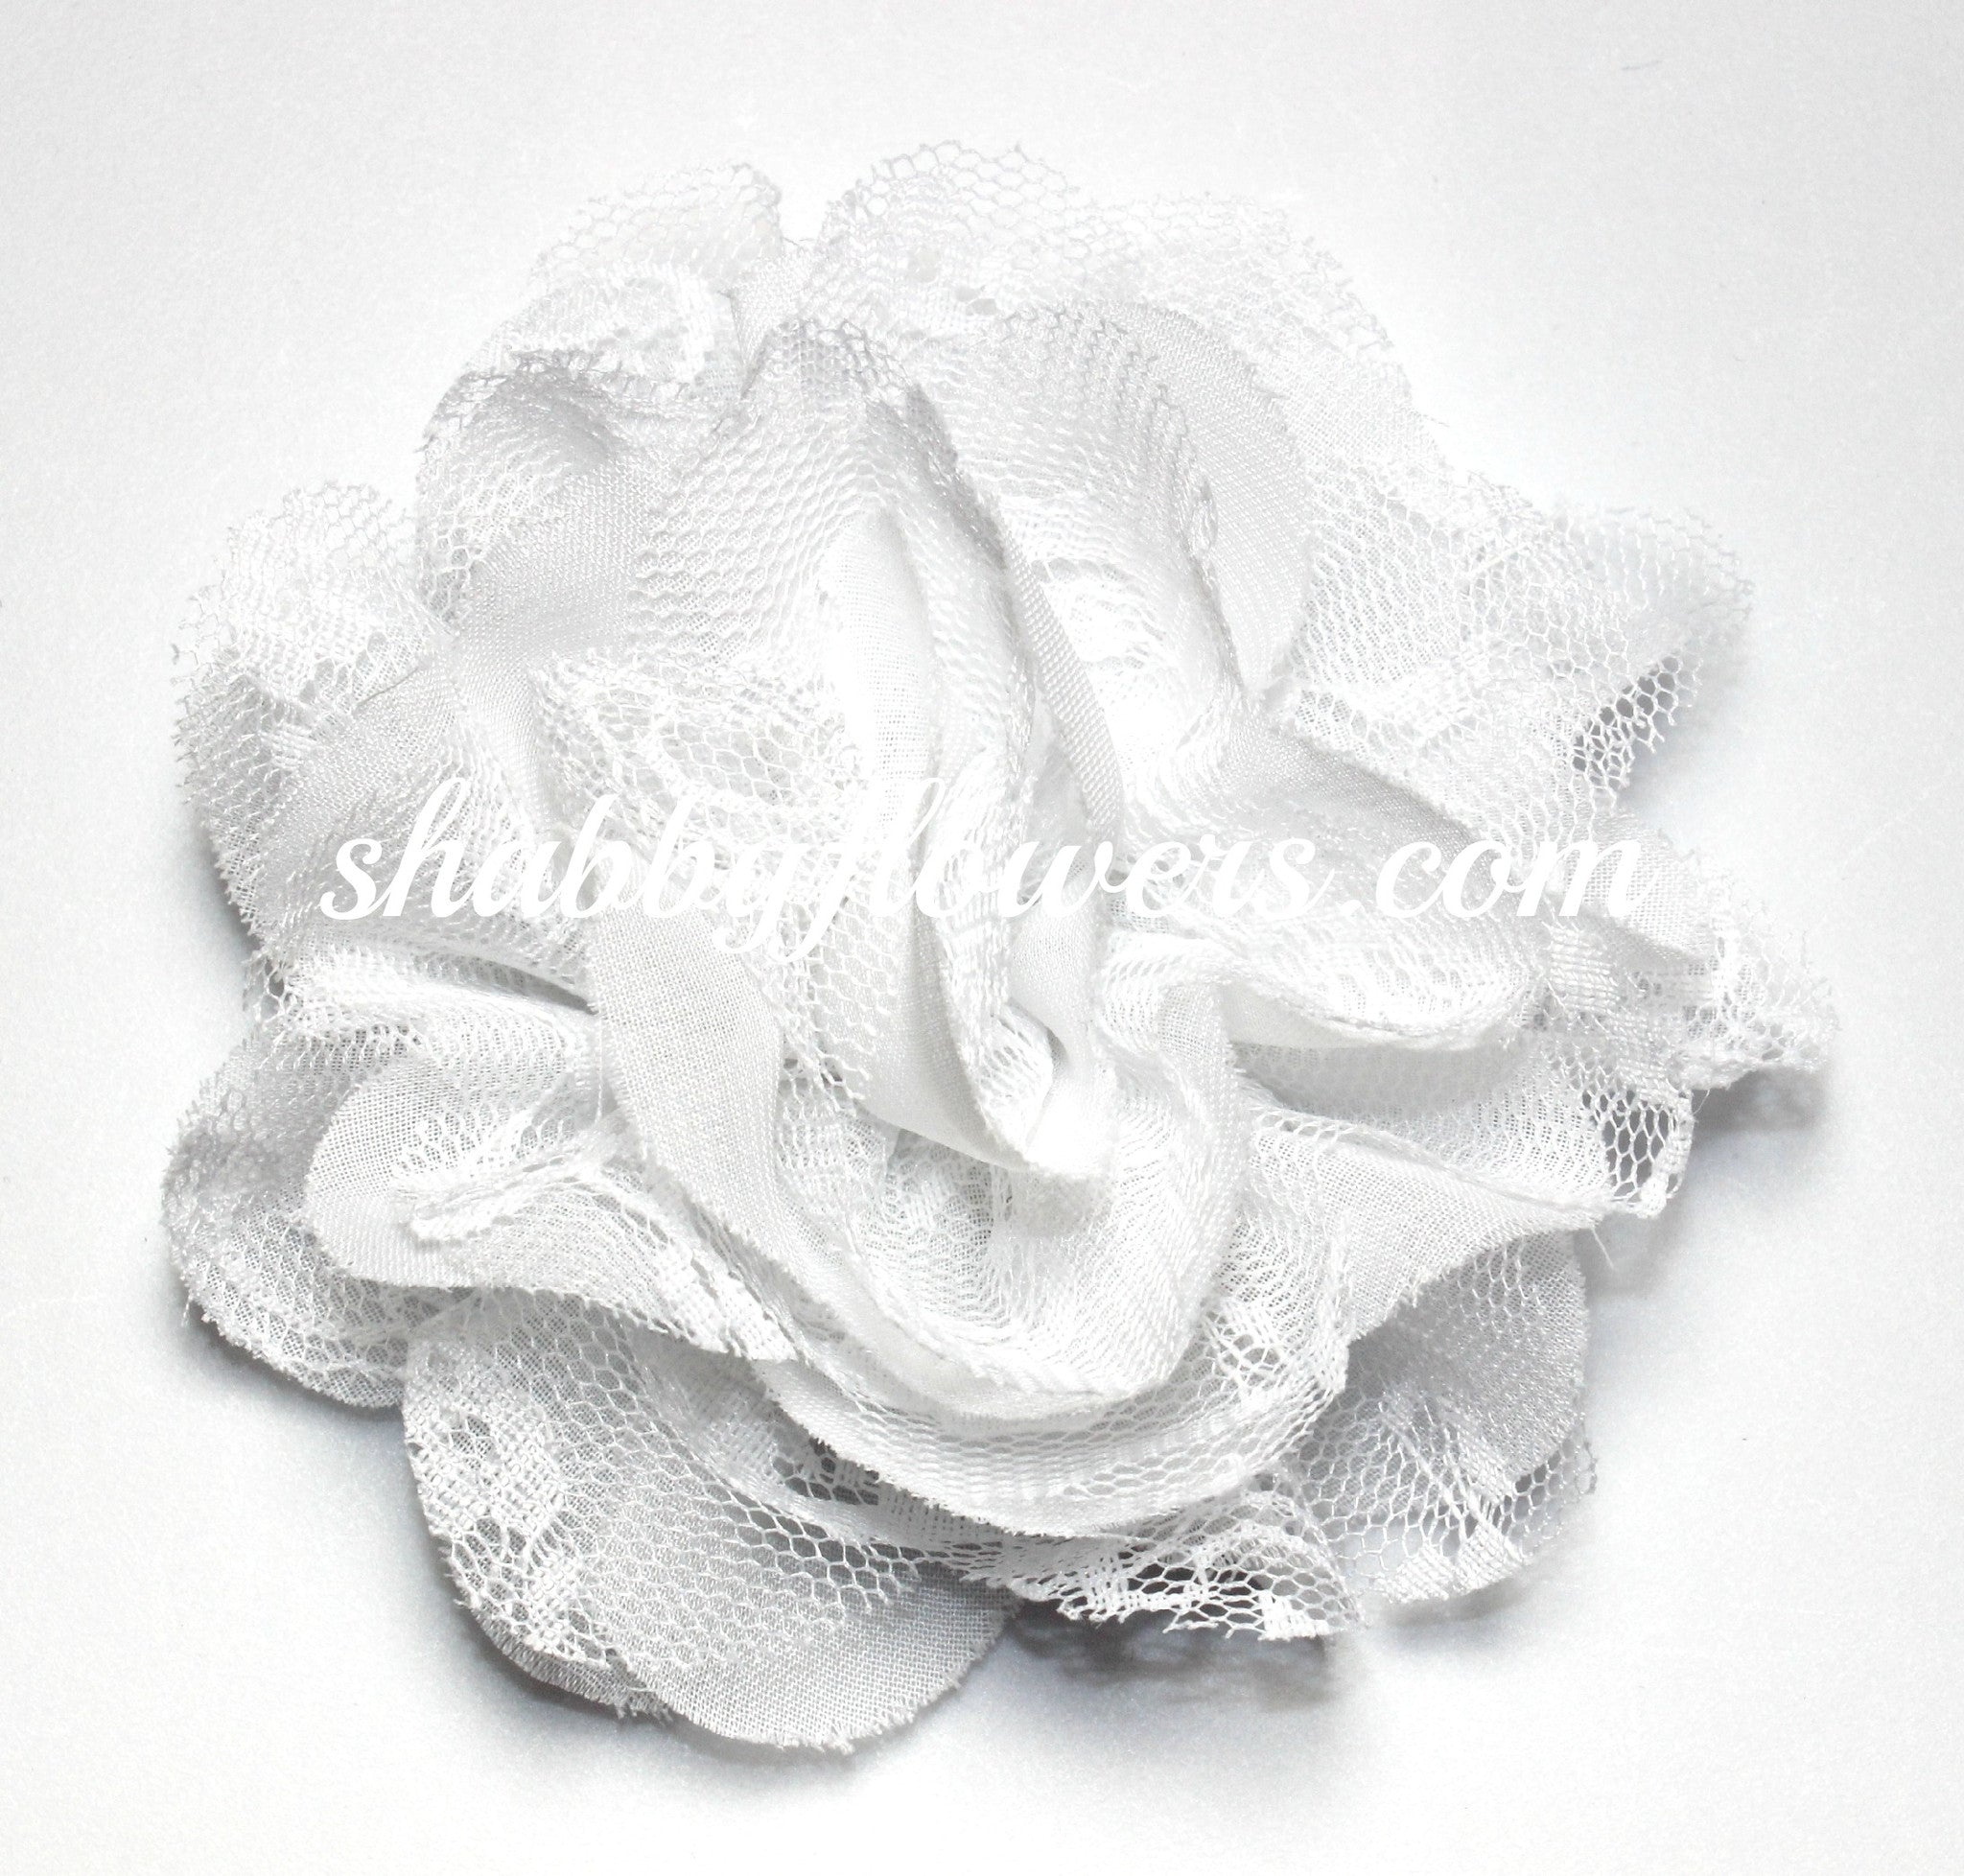 Chiffon and Lace Flower - White - shabbyflowers.com